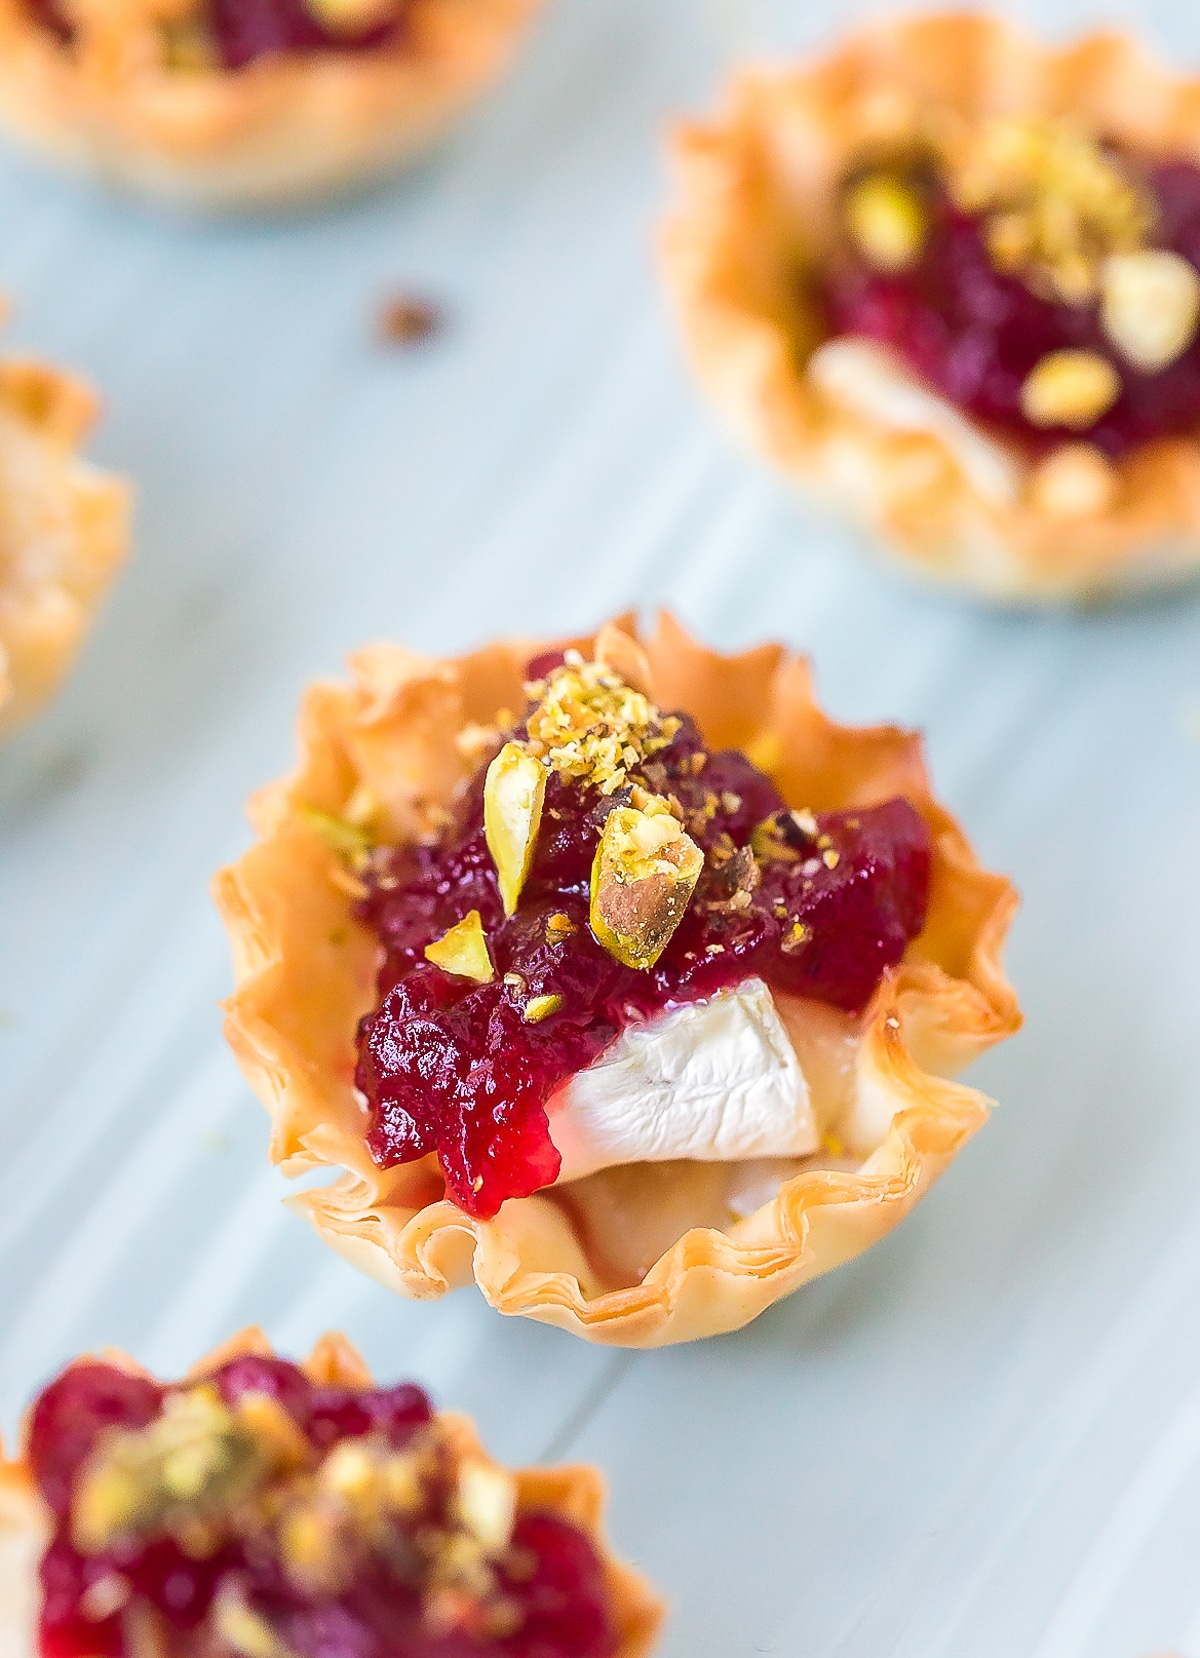 Easy Baked Brie Bites with Cranberry Sauce Recipe #ASpicyPerspective #brie #baked #cranberry